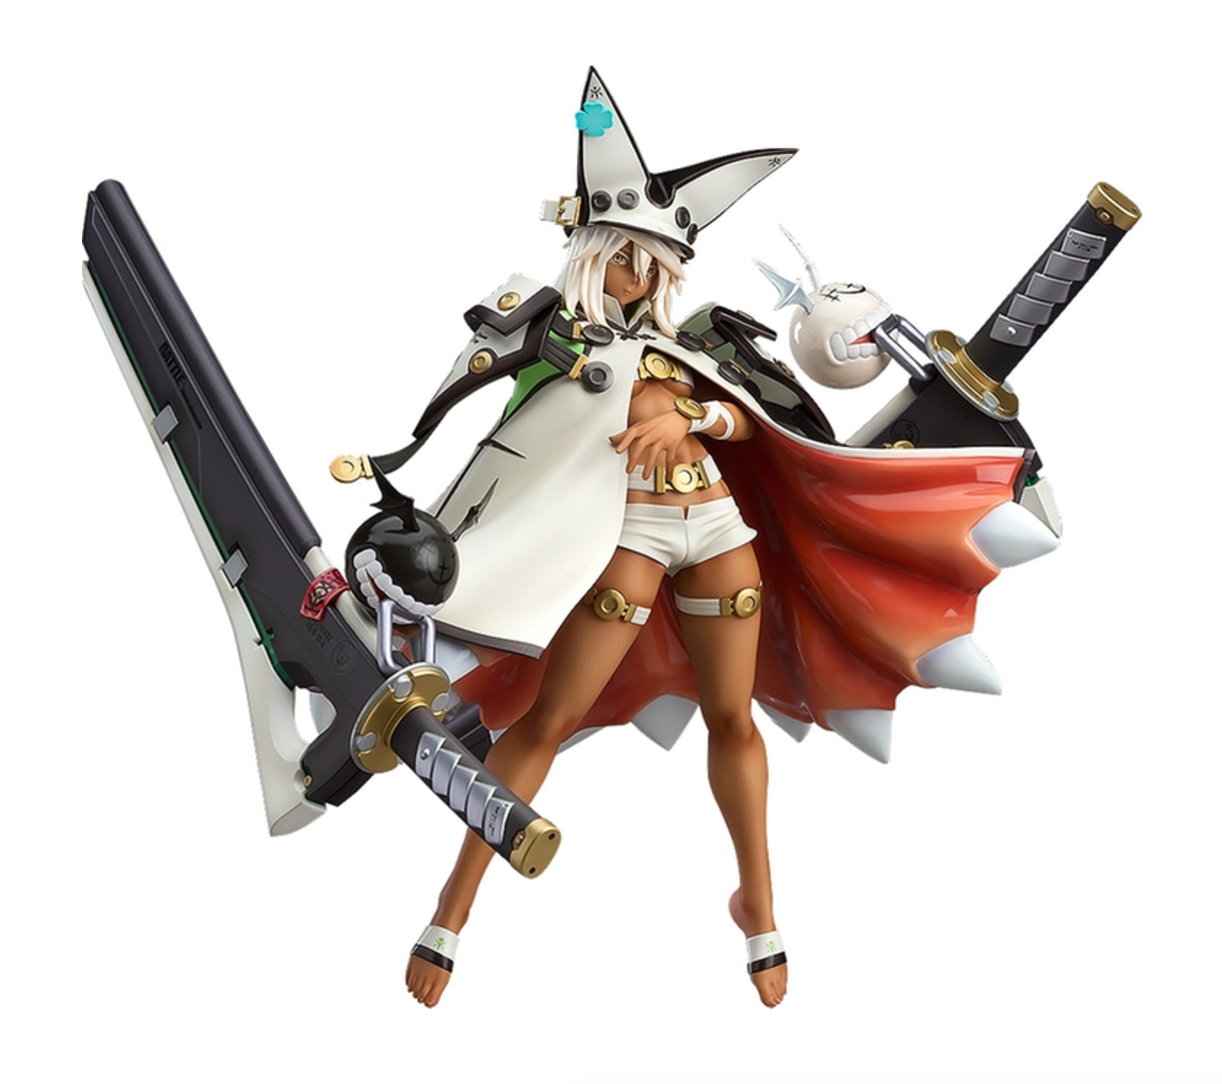 Image 1 For Guilty Gear Xrd  Sign    Ramlethal Valentine   Wonderful Hobby  Selection